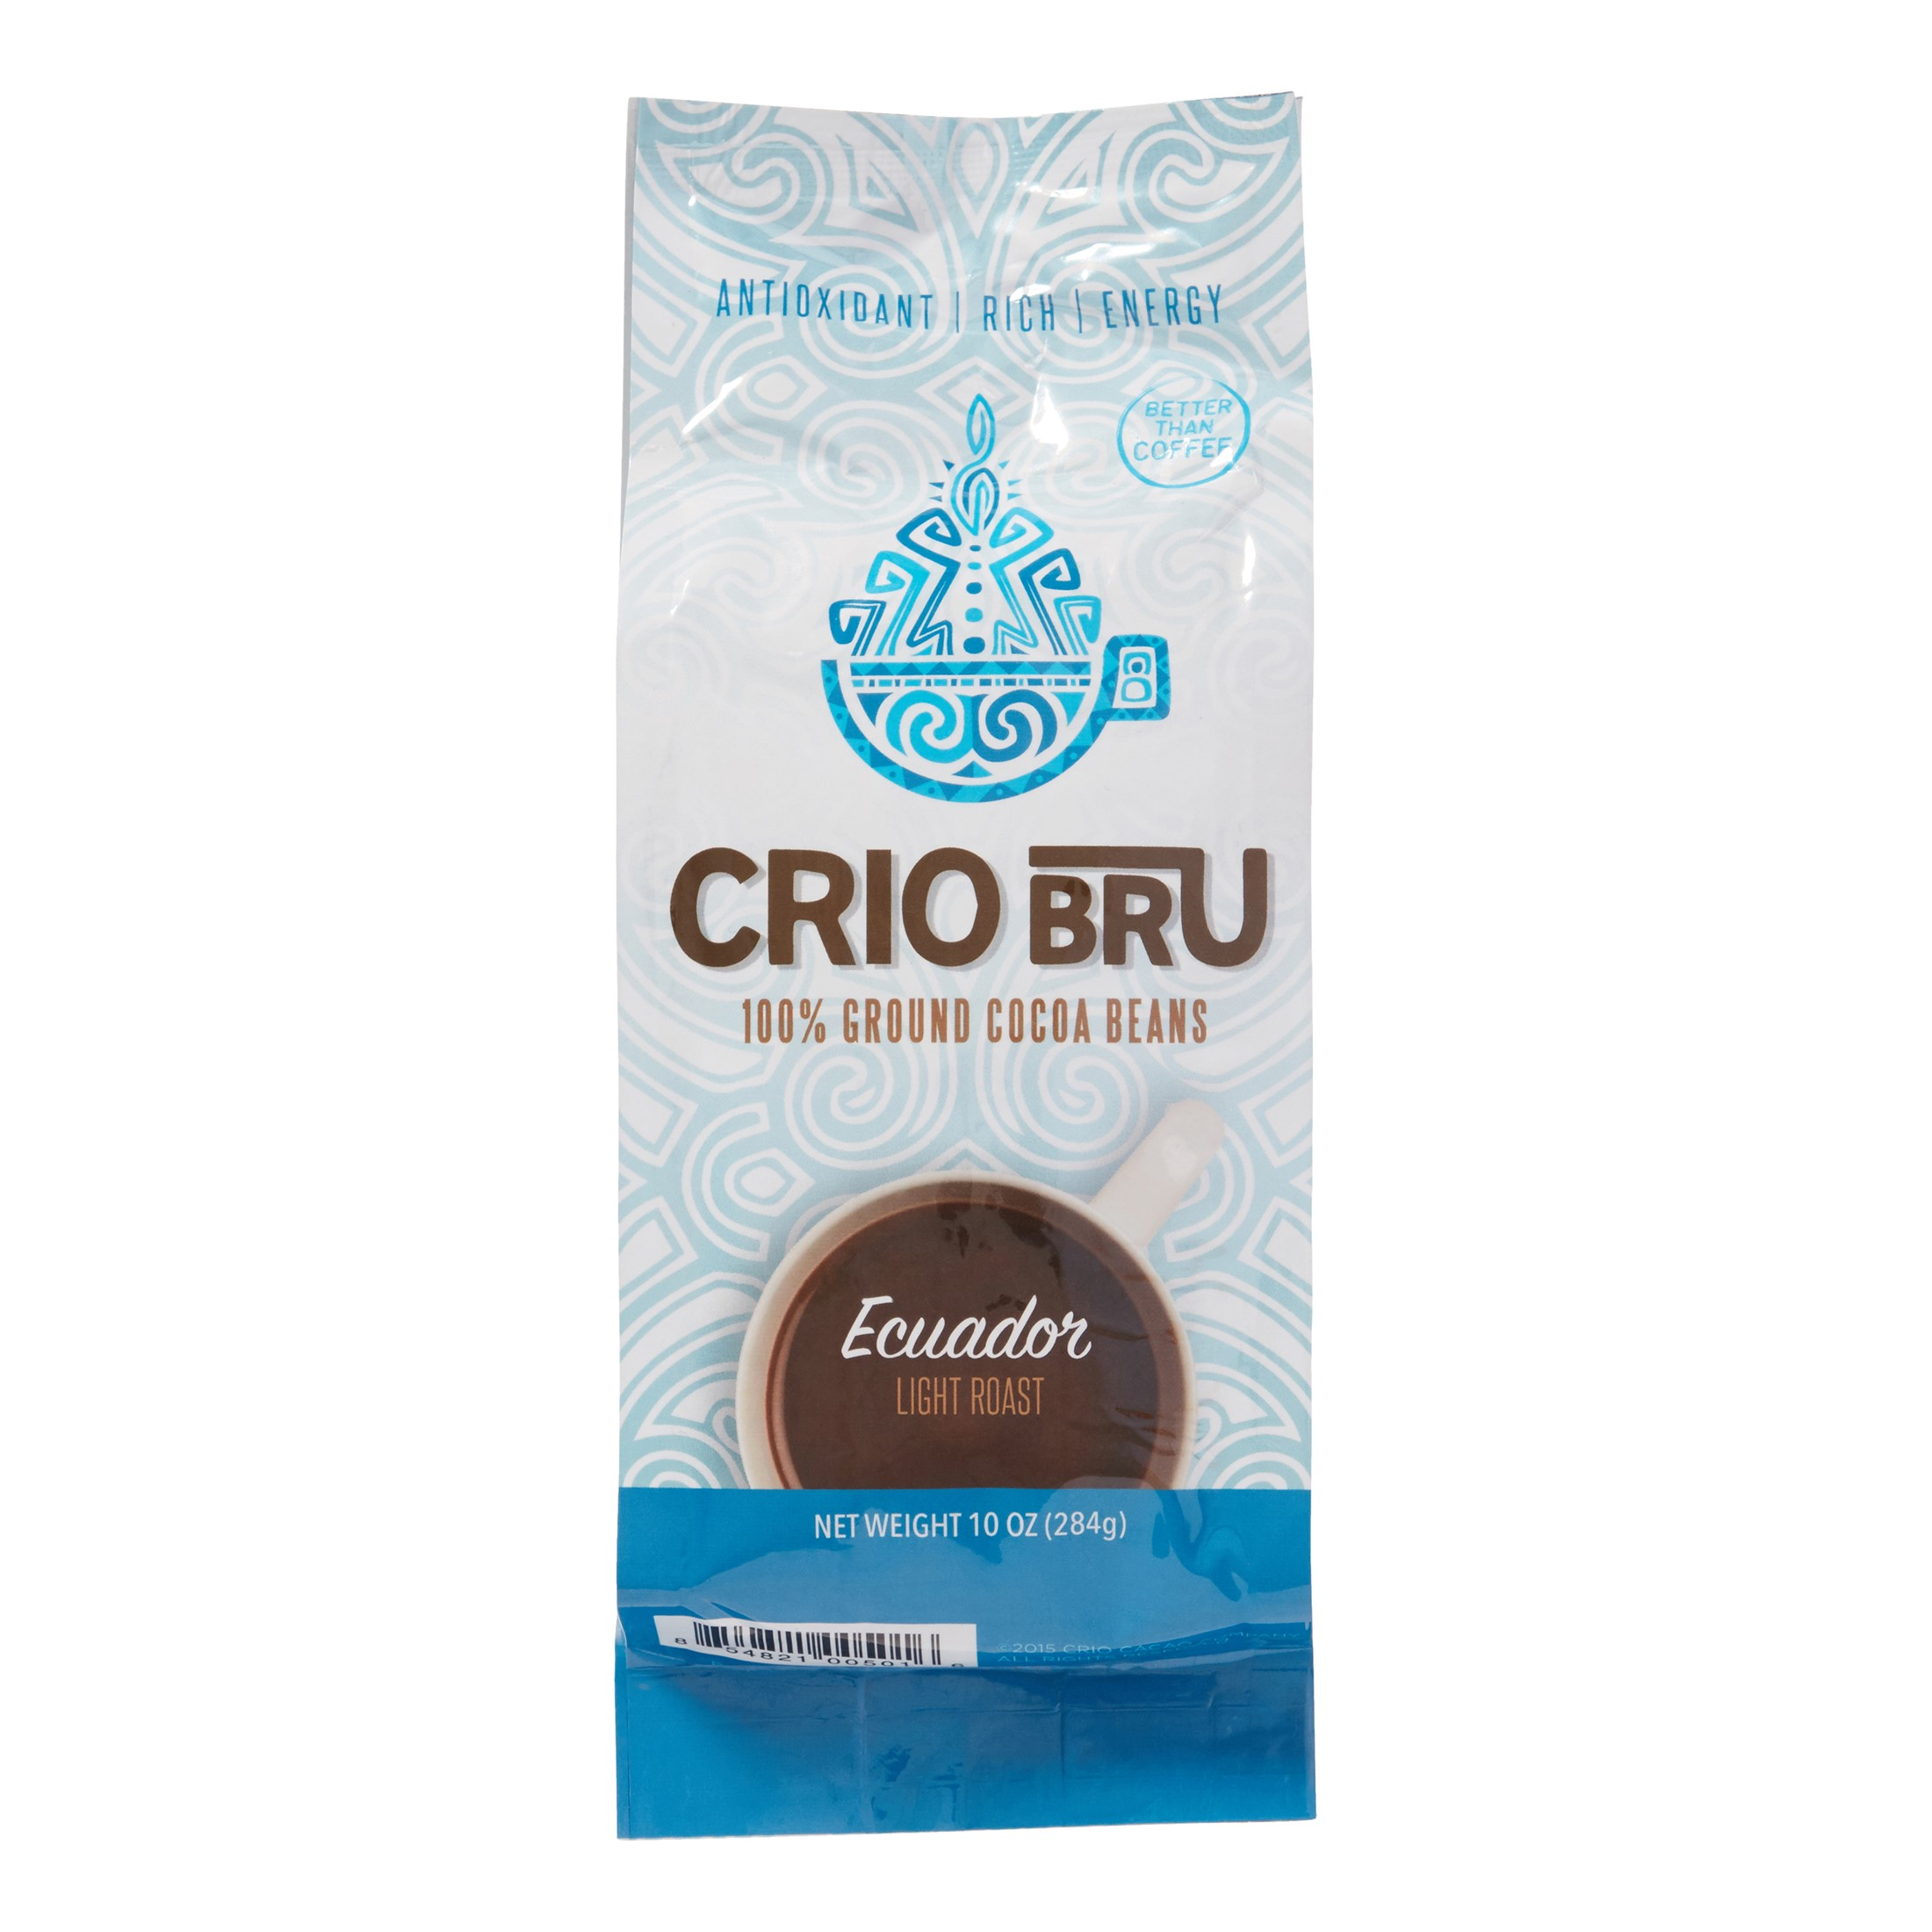 Crio Bru Light Roast Ground Cocoa Beans, Ecuador, 10 Oz, 1 Ct